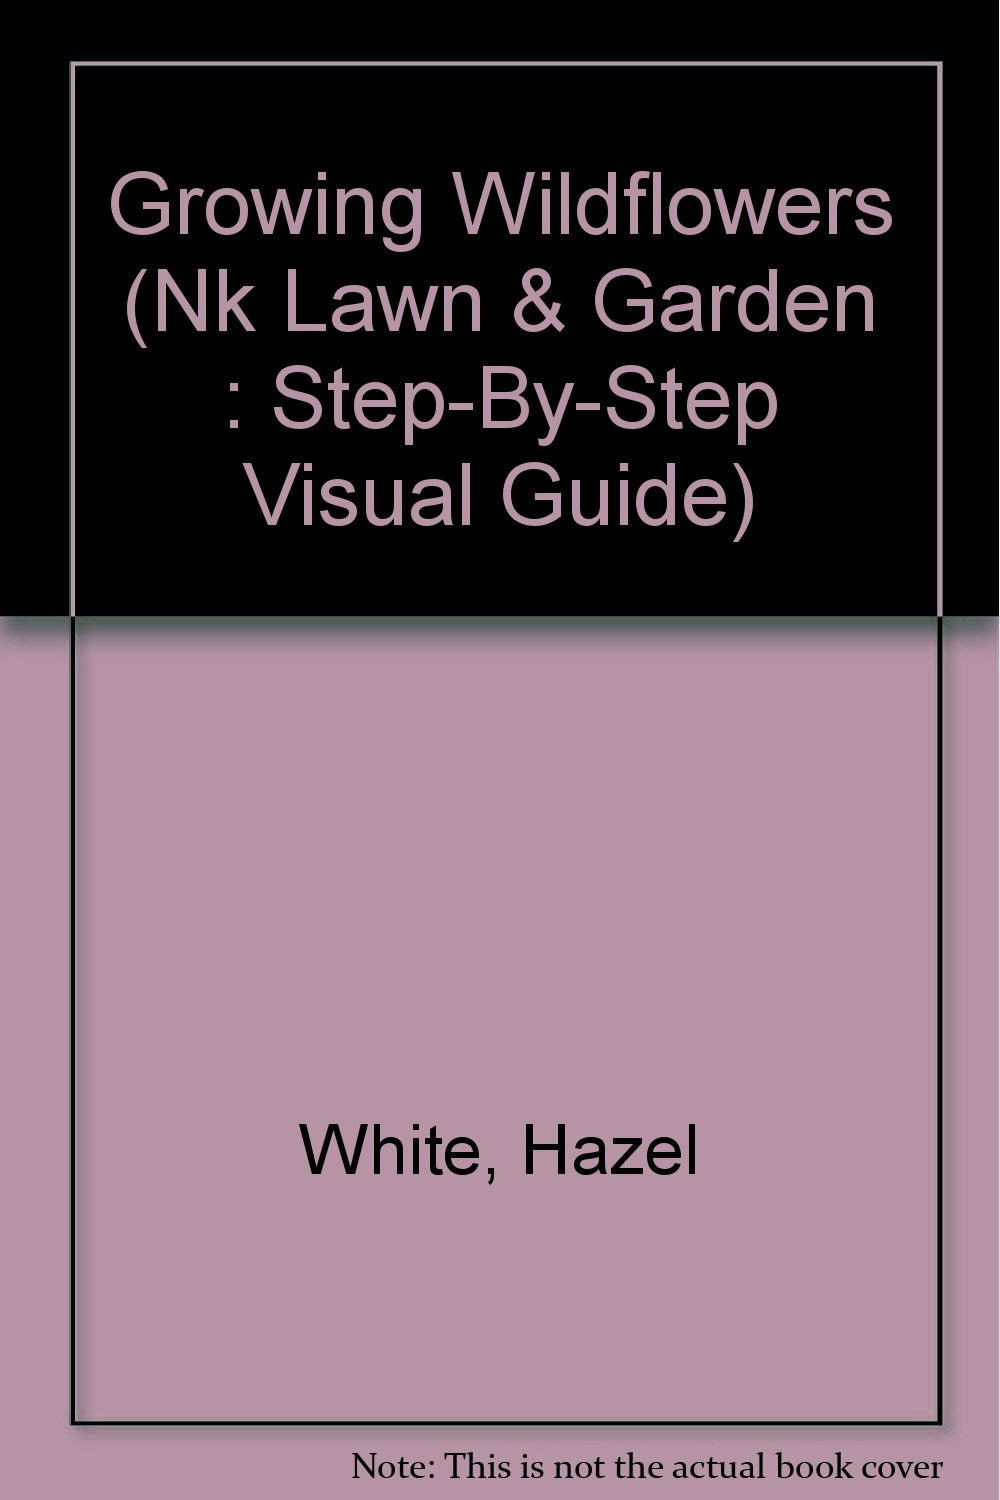 Growing Wildflowers (Nk Lawn & Garden : Step-By-Step Visual Guide)